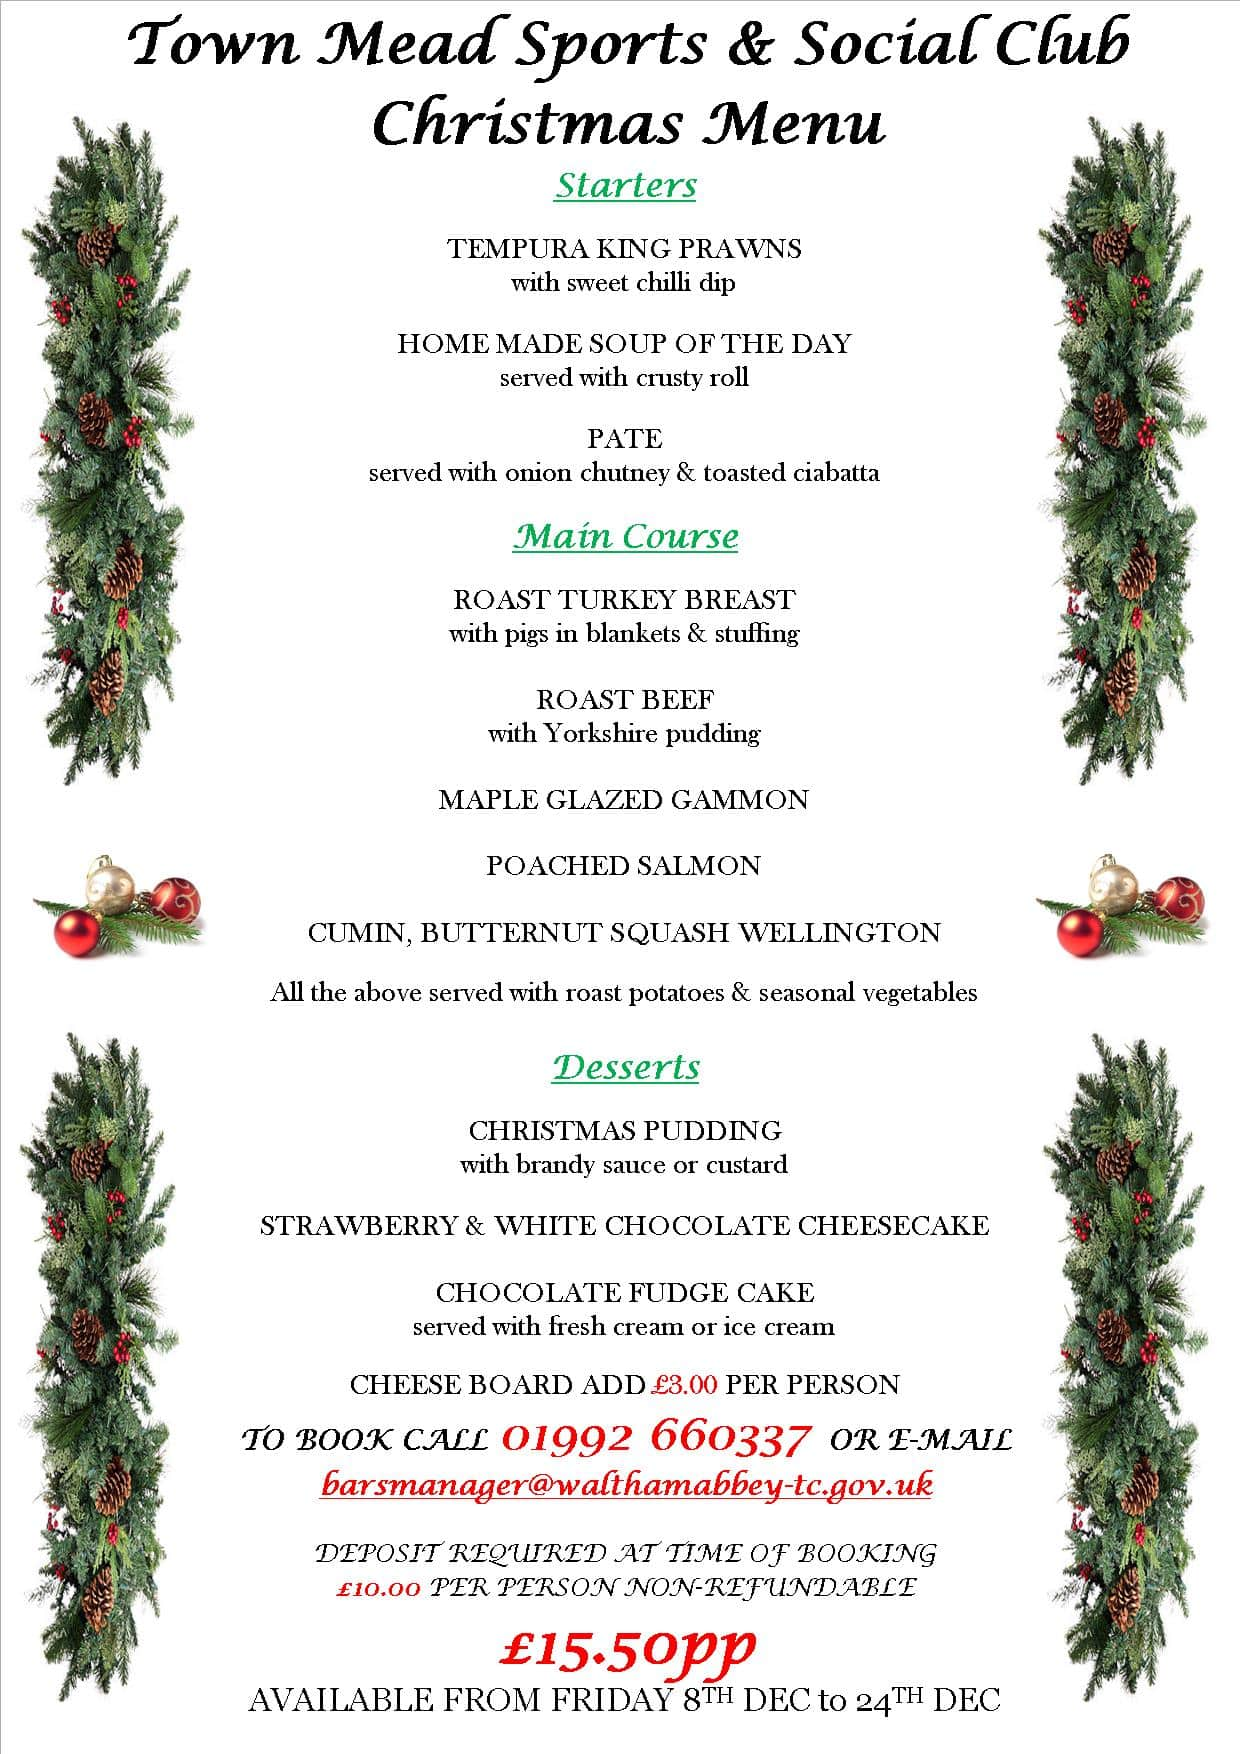 Town Mead Sports and Social Club - Christmas Menu from 8th December ...